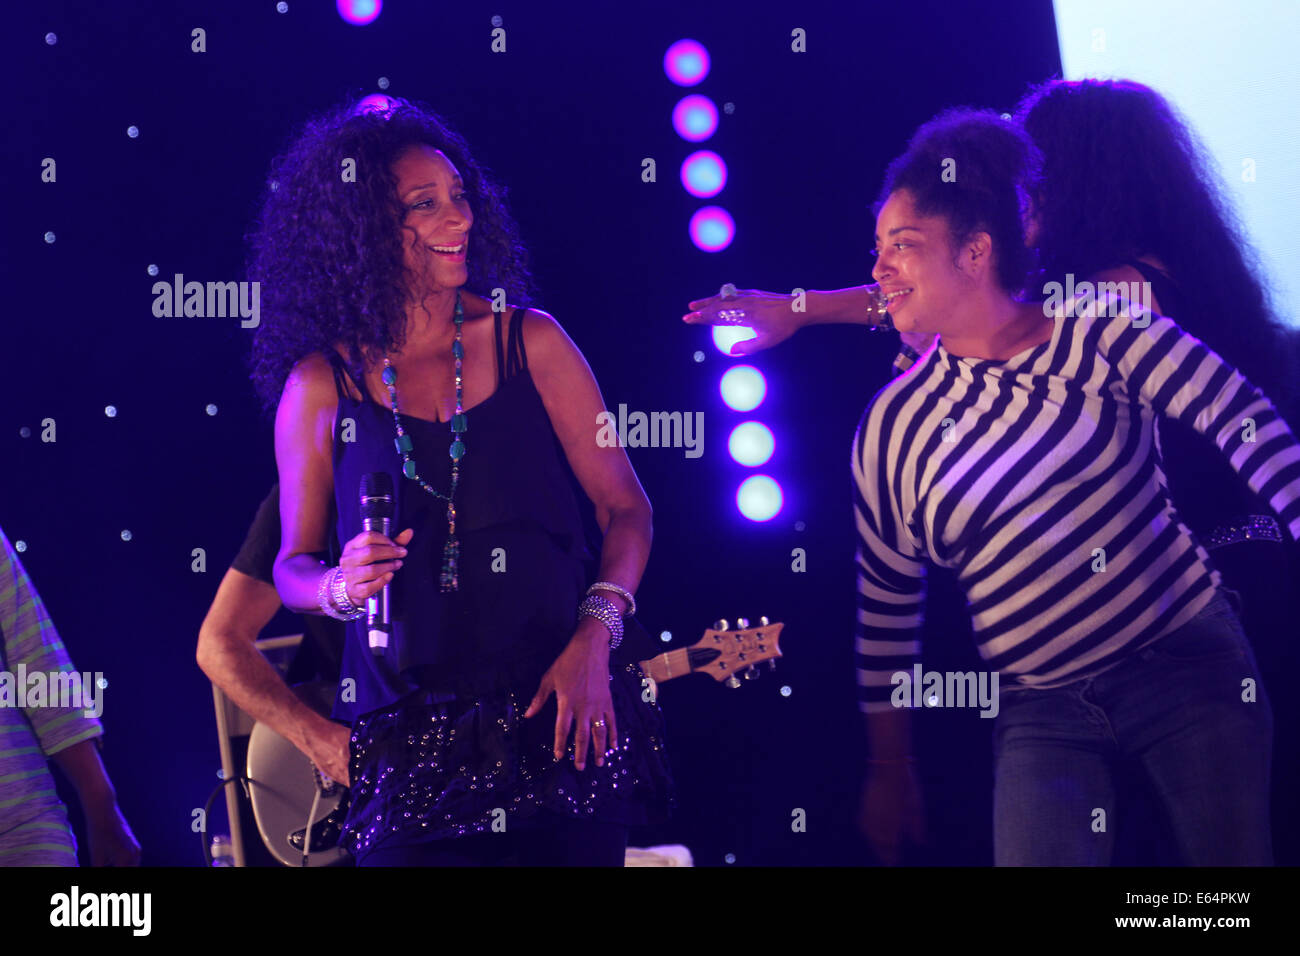 A Newham resident joins​sisters Debbie, Kim, Joni​ on the stage for the annual ​Under the Stars concert in Newham. - Stock Image